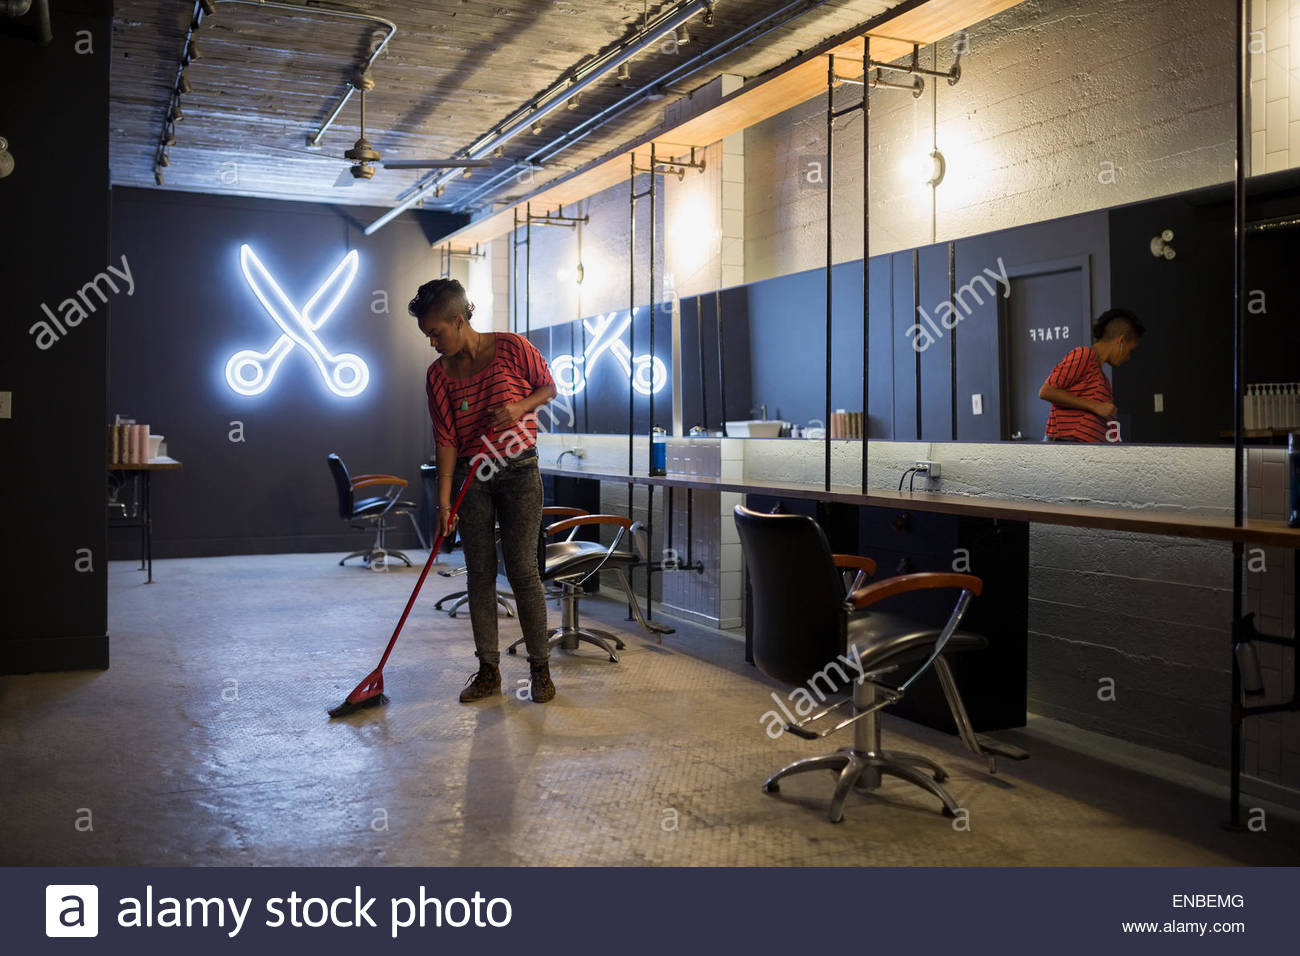 Hairstylist sweeping hair salon floor with broom - Stock Image